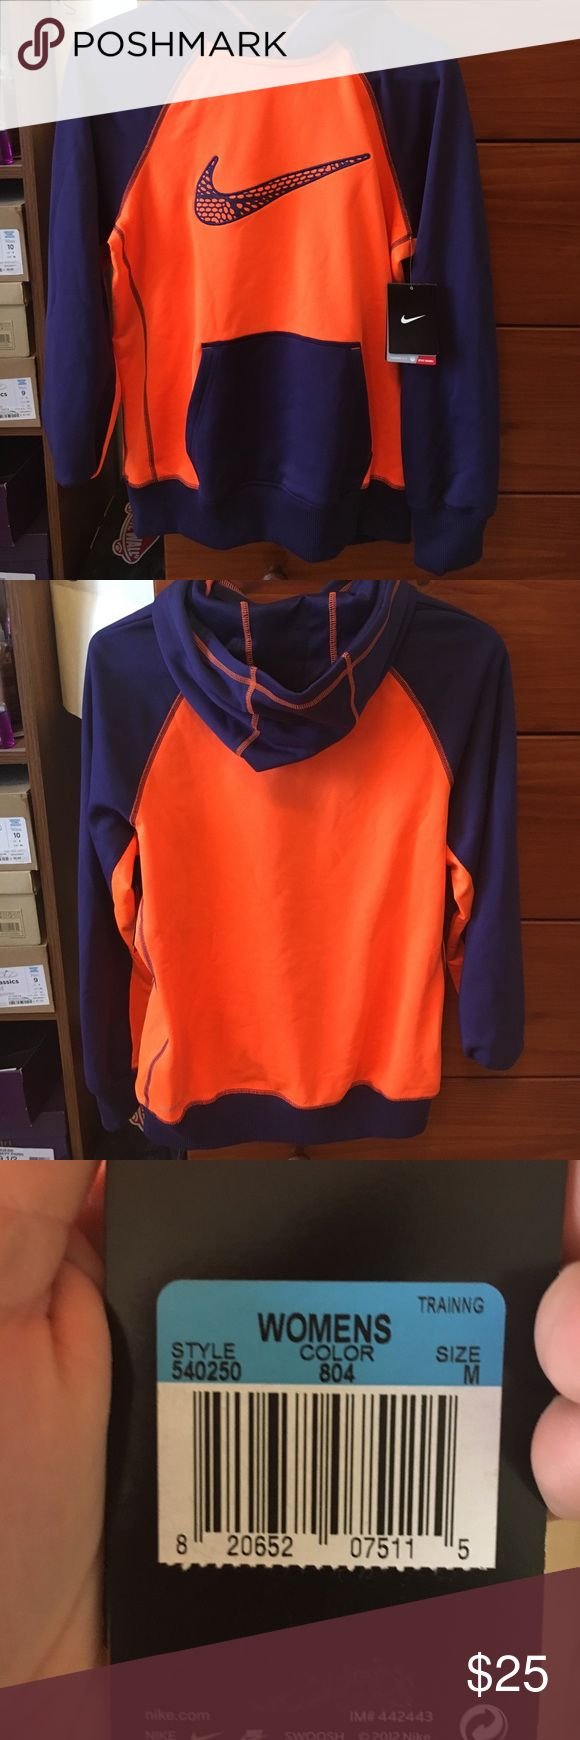 Women's Nike sweatshirt!! (Never worn) Bright orange and Navy blue! Just too small for me! Nike Jackets & Coats Utility Jackets